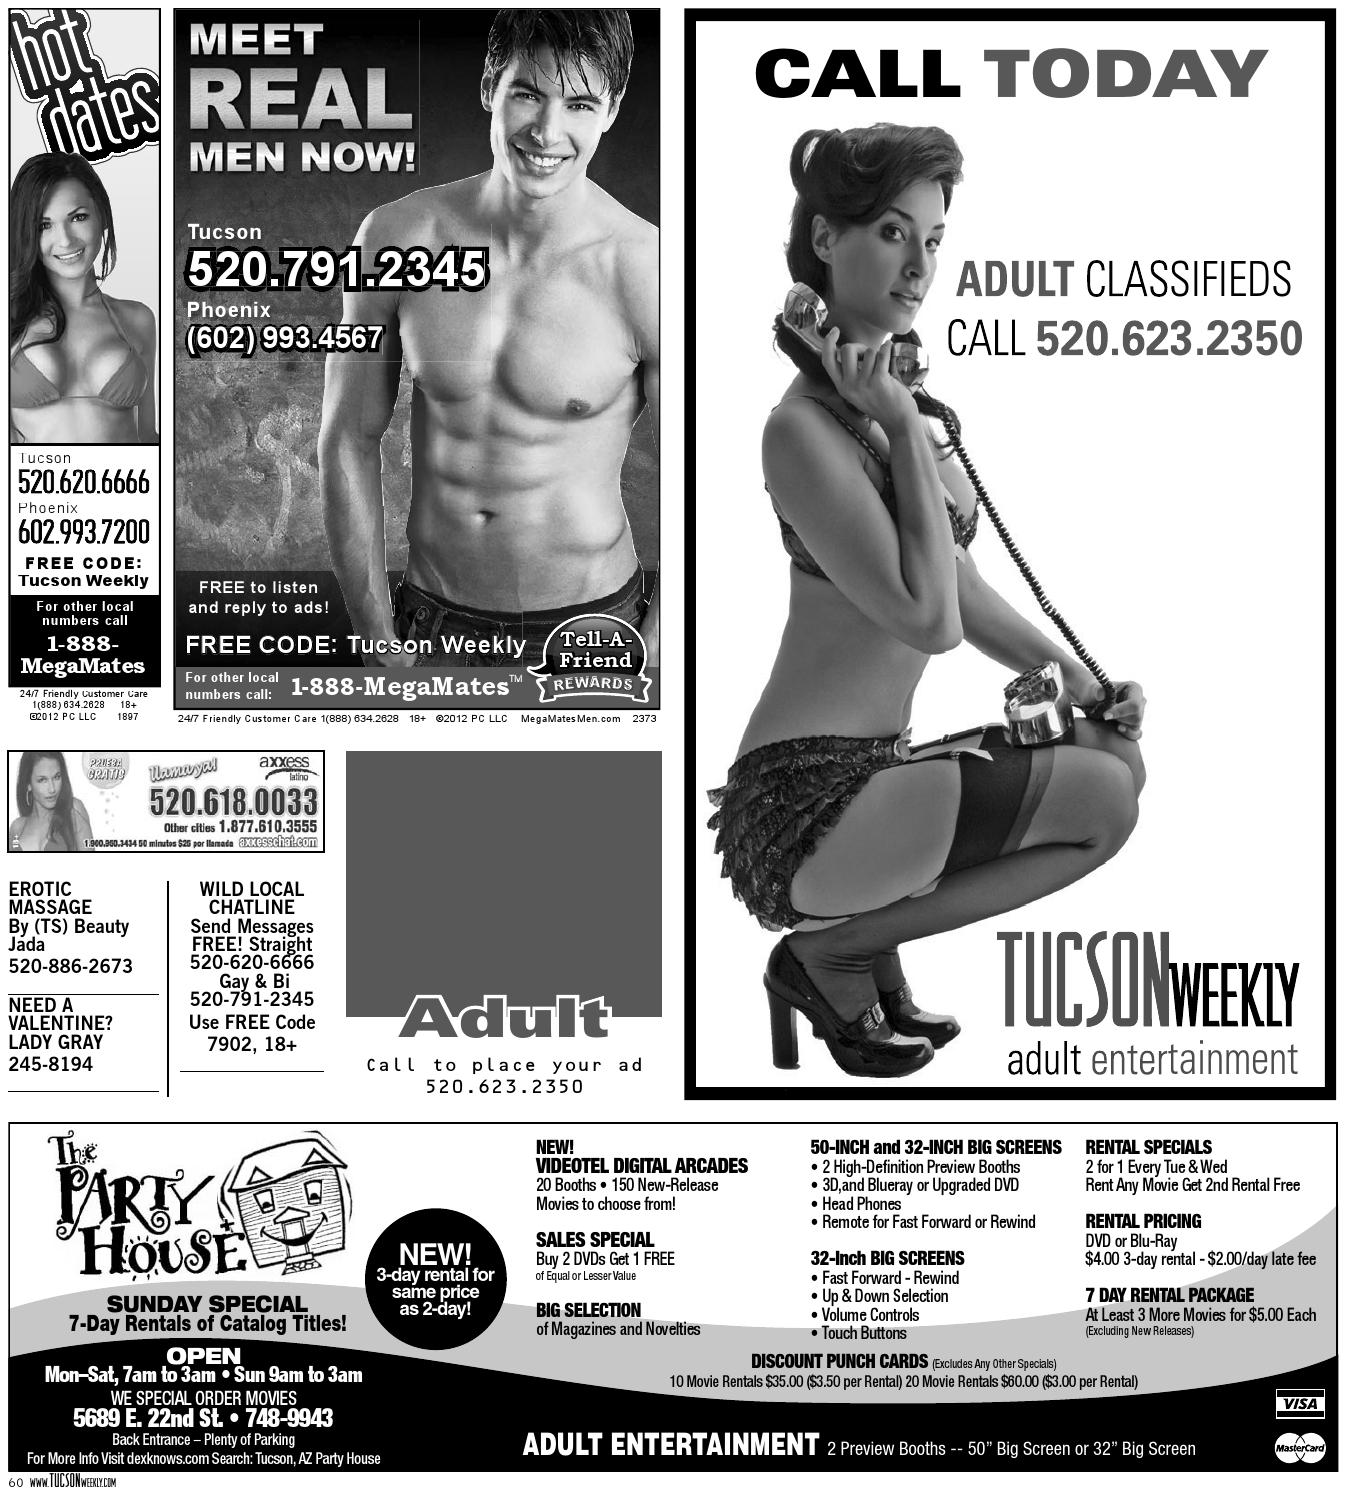 entertainment tucson Adult